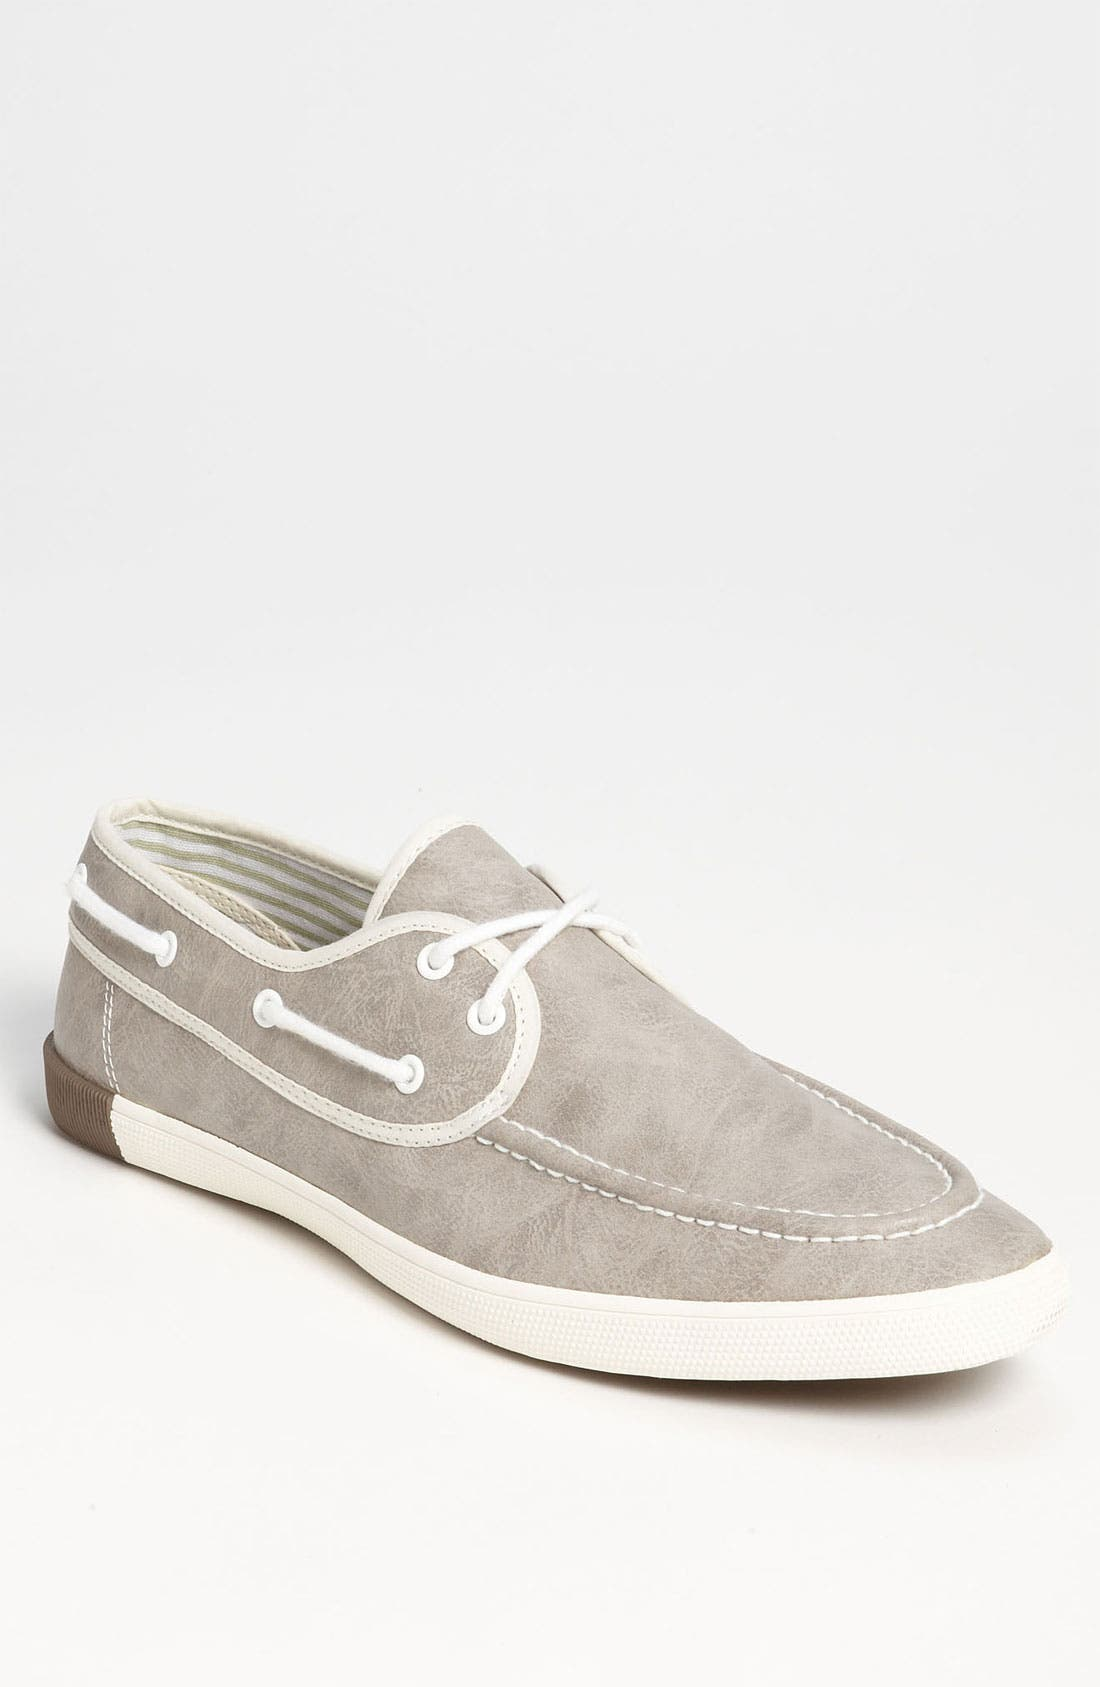 Alternate Image 1 Selected - ALDO 'Rowson' Boat Shoe